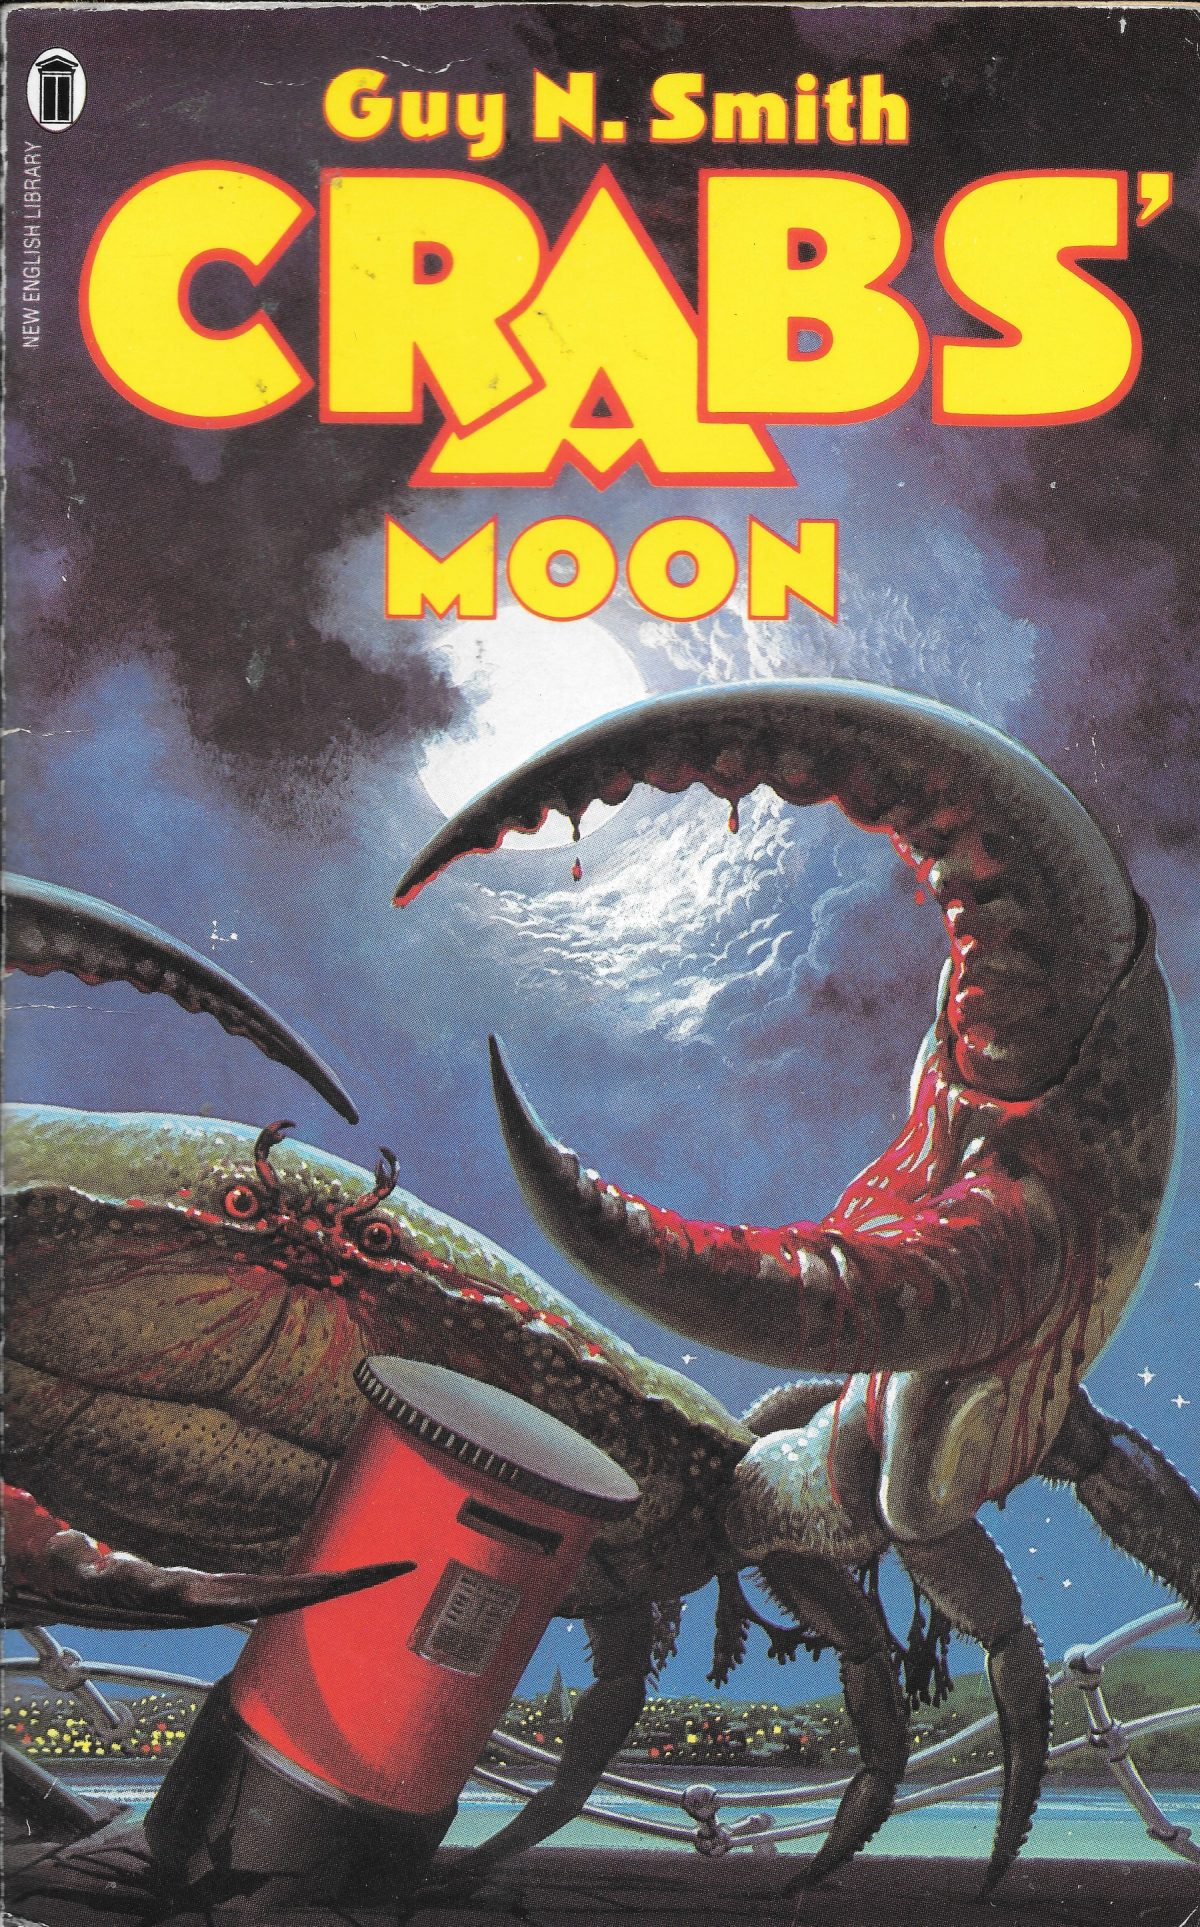 Guy N Smith, horror fictions, horror, books, Crabs Moon